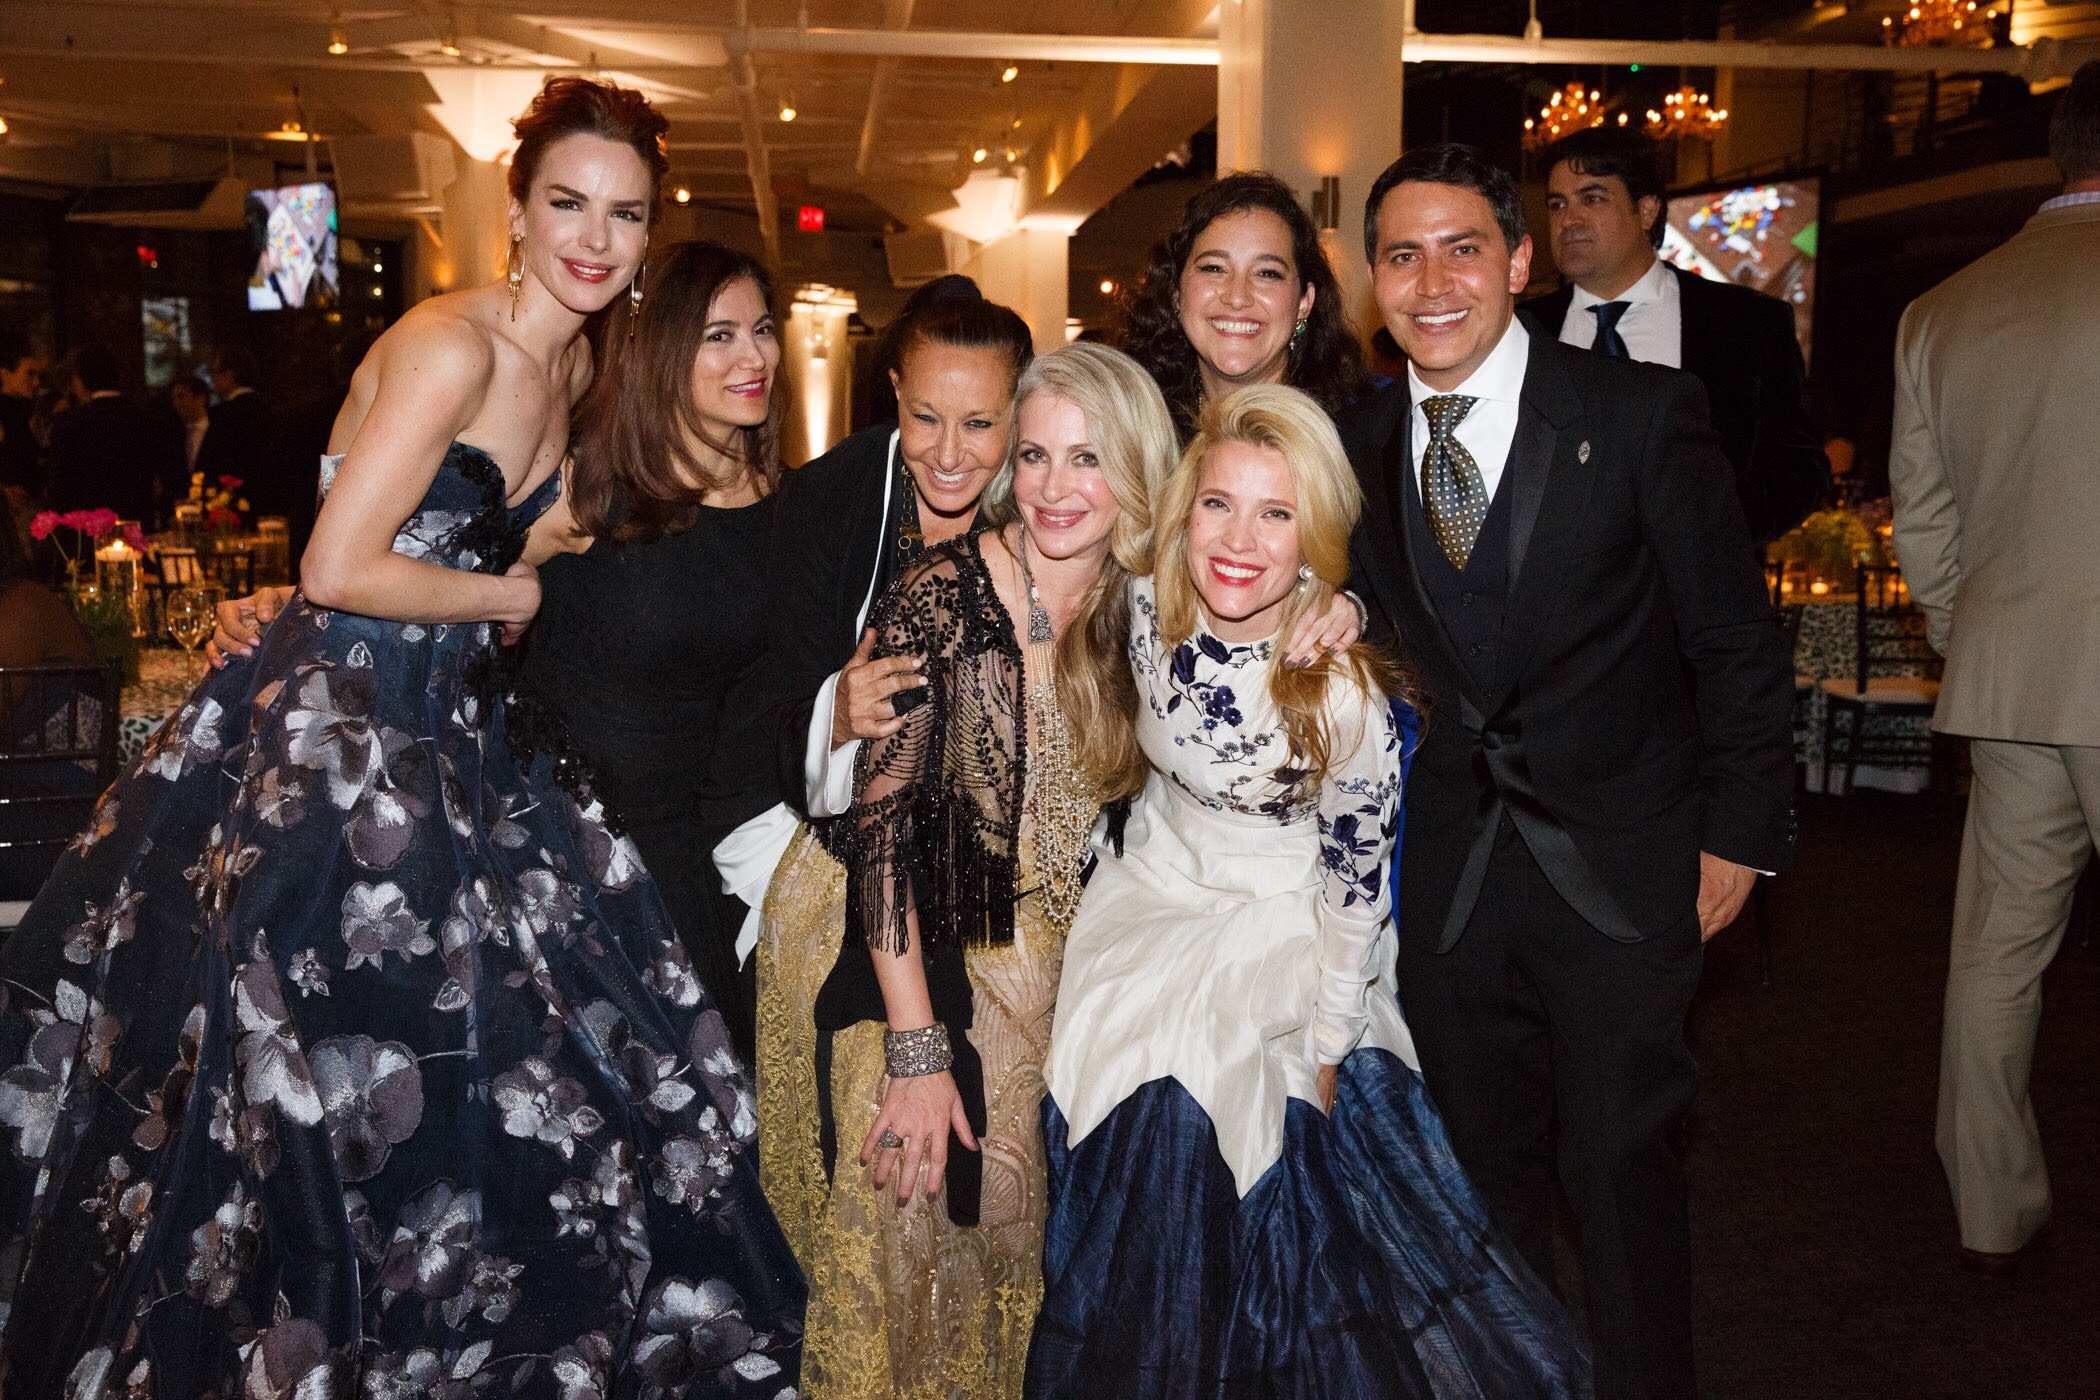 Eglantina Zingg, Donna Karan, Carmen, Celina de Sola, Jana Pasquel de Shapiro and fellow Glasswing supporters.